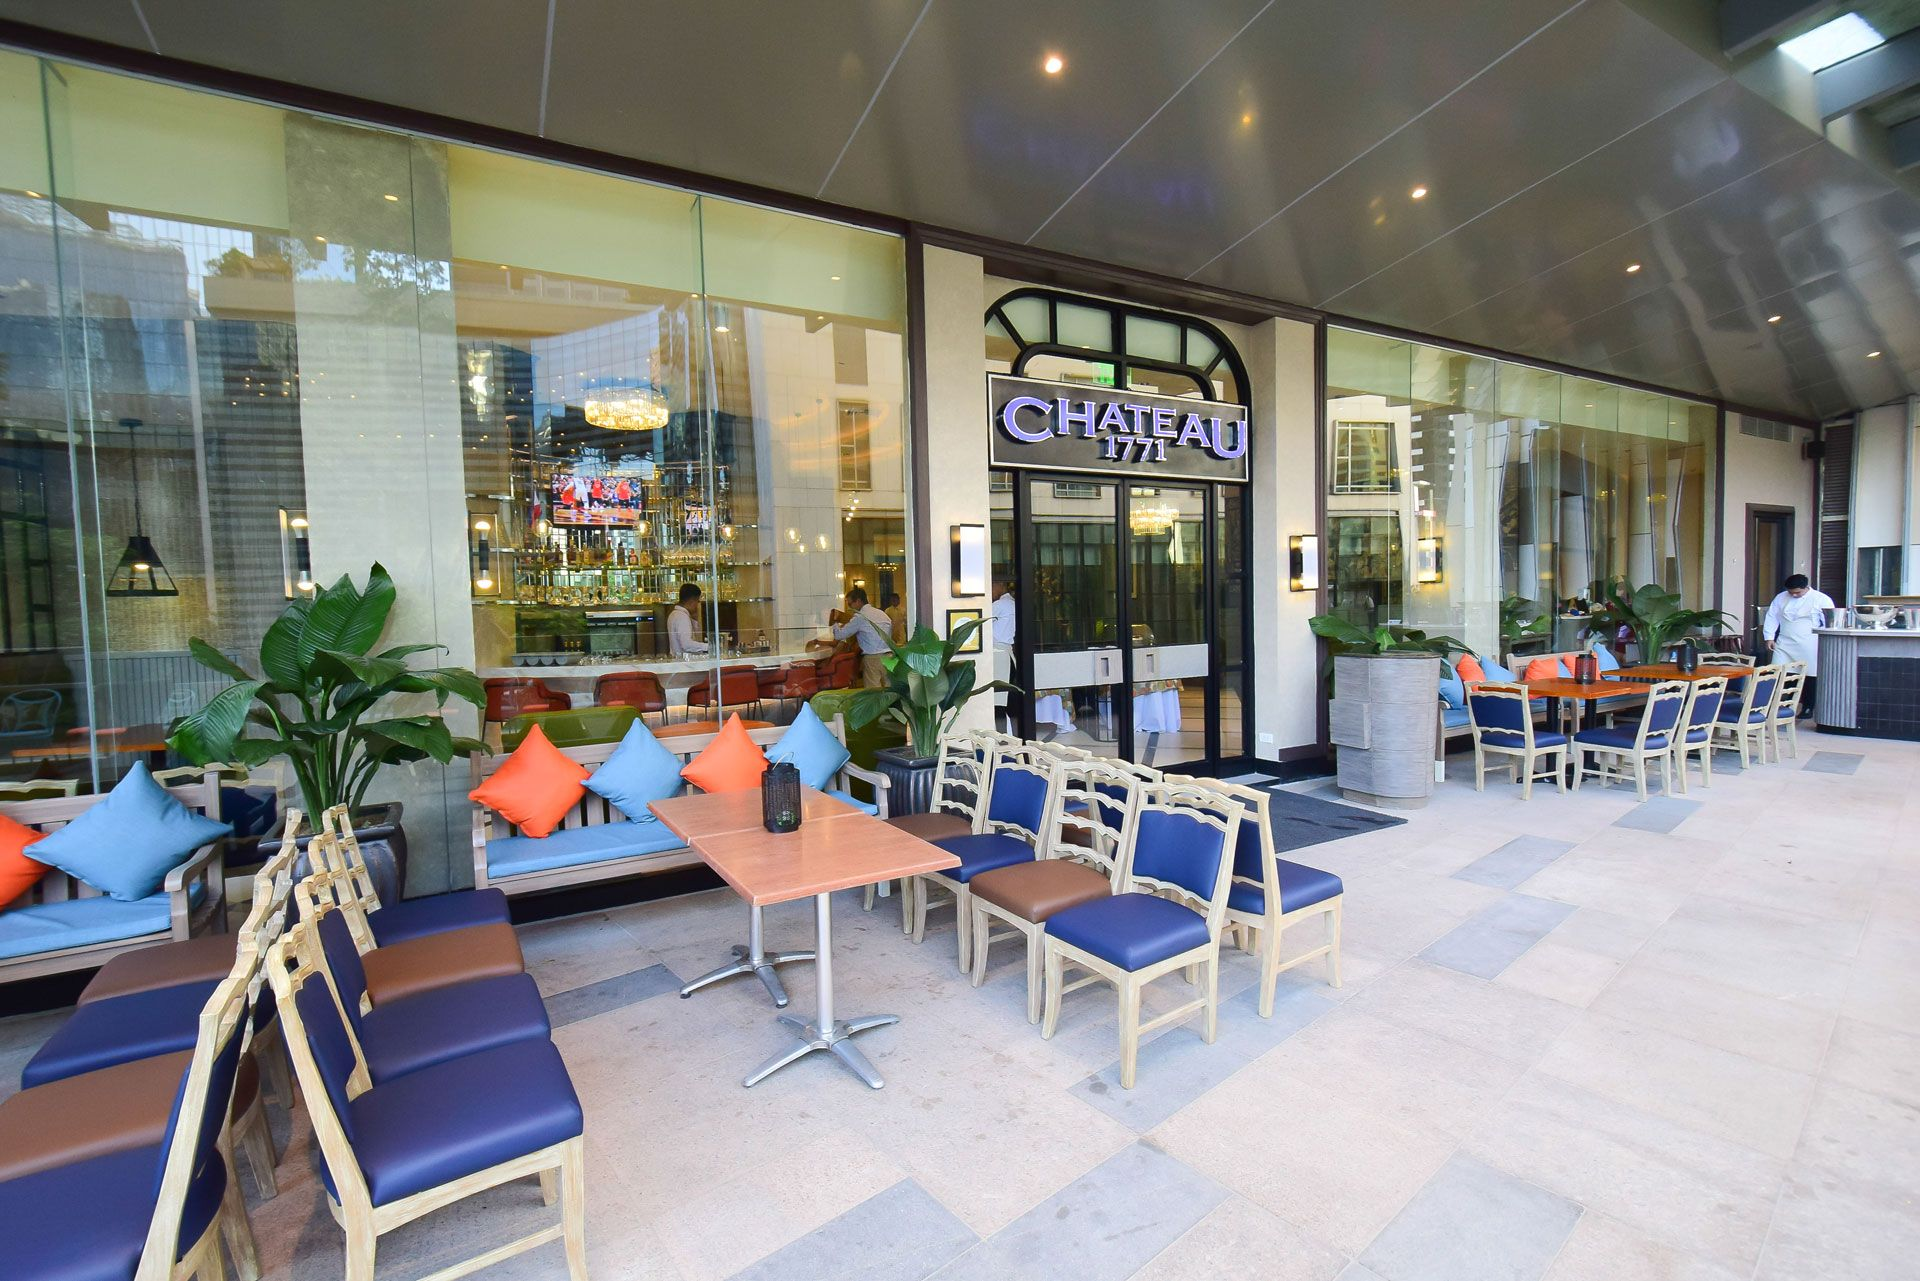 Chateau 1771 Relaunches At The Bustling BGC